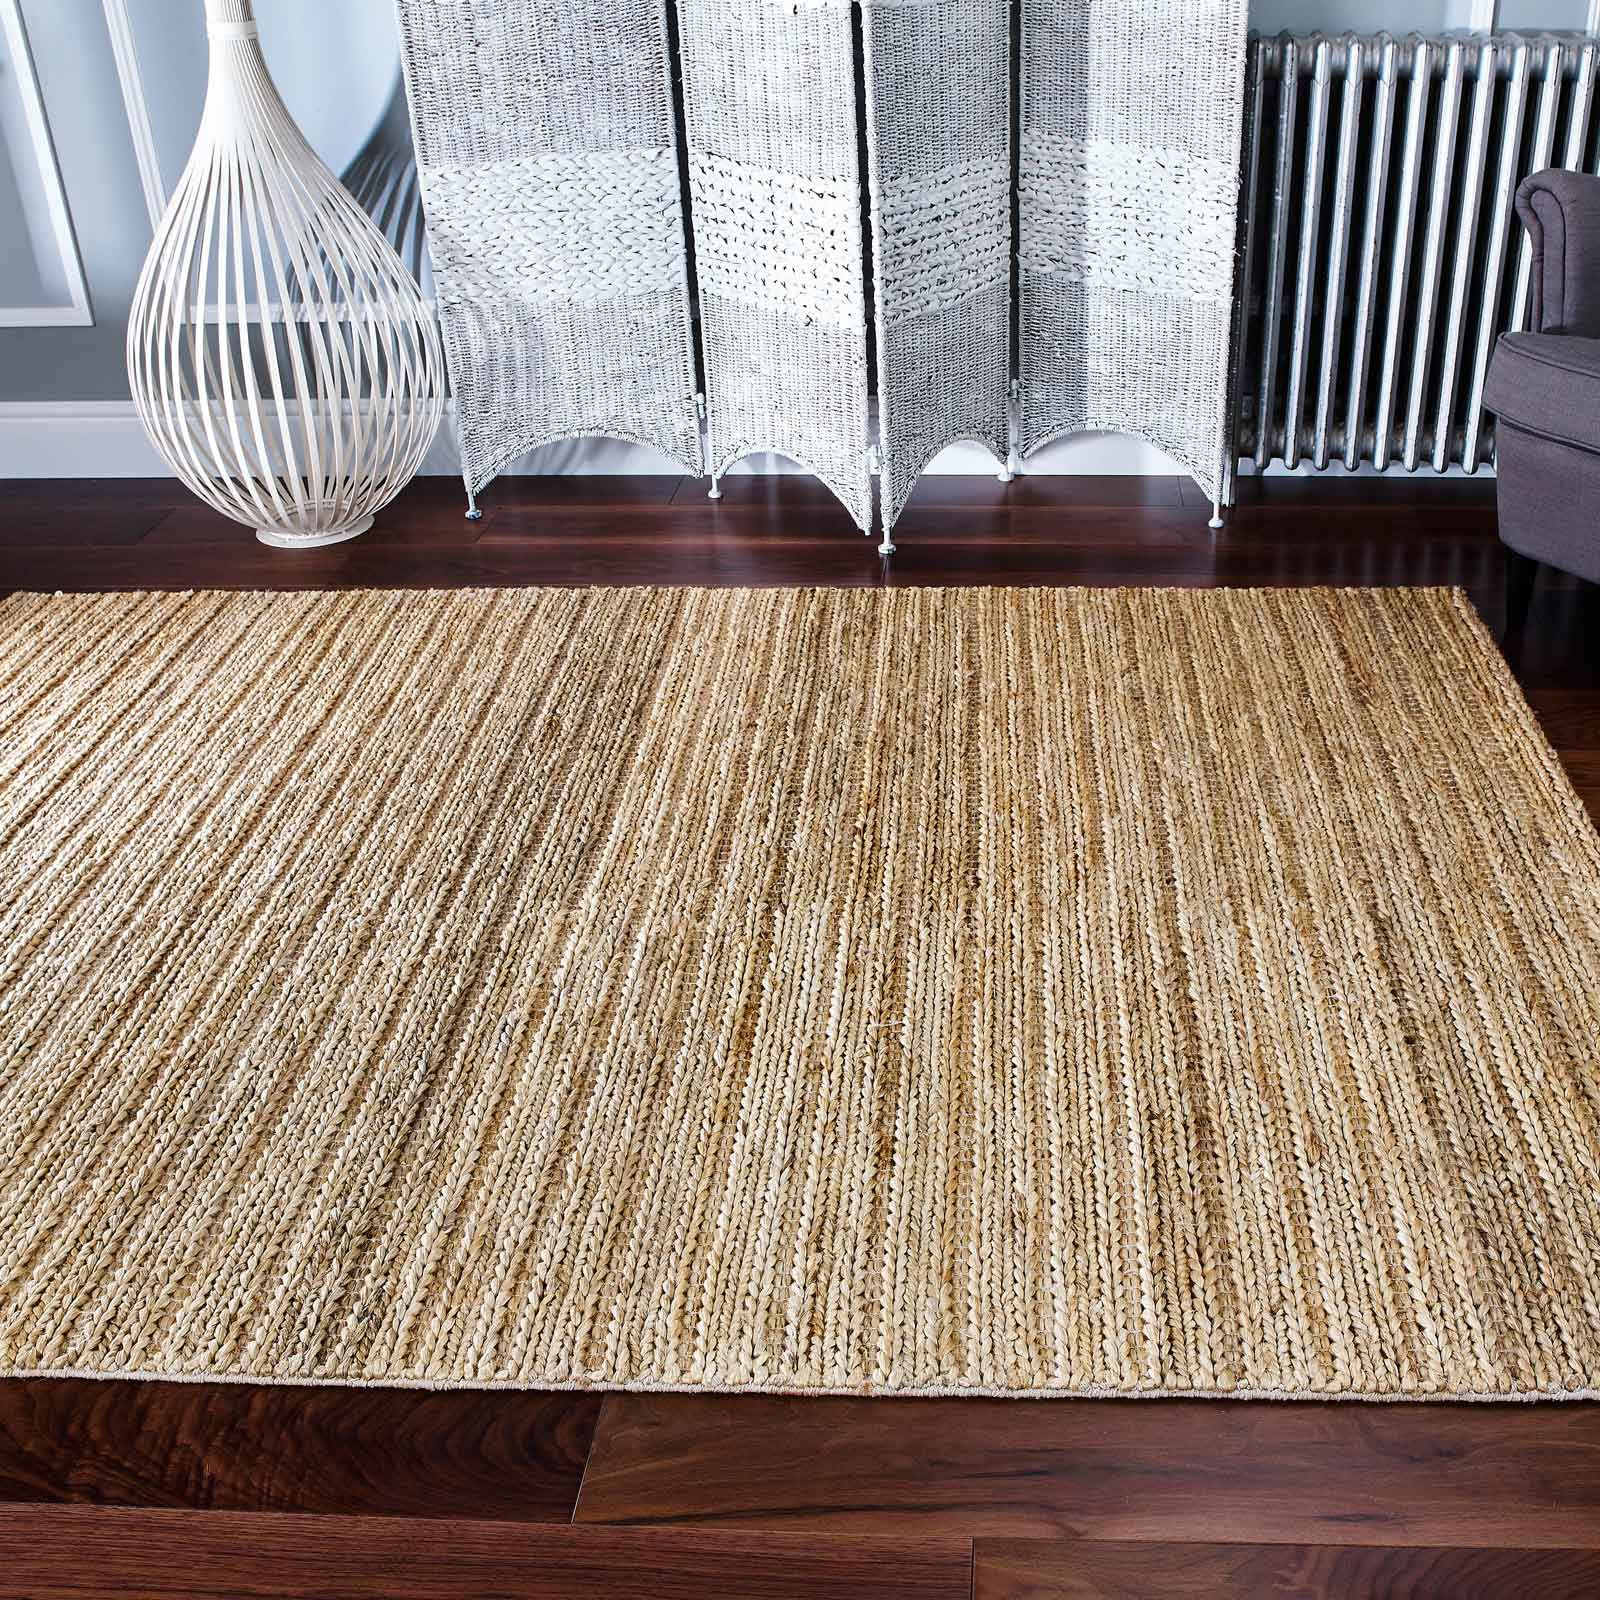 Crestwood Jute Rugs In Cream